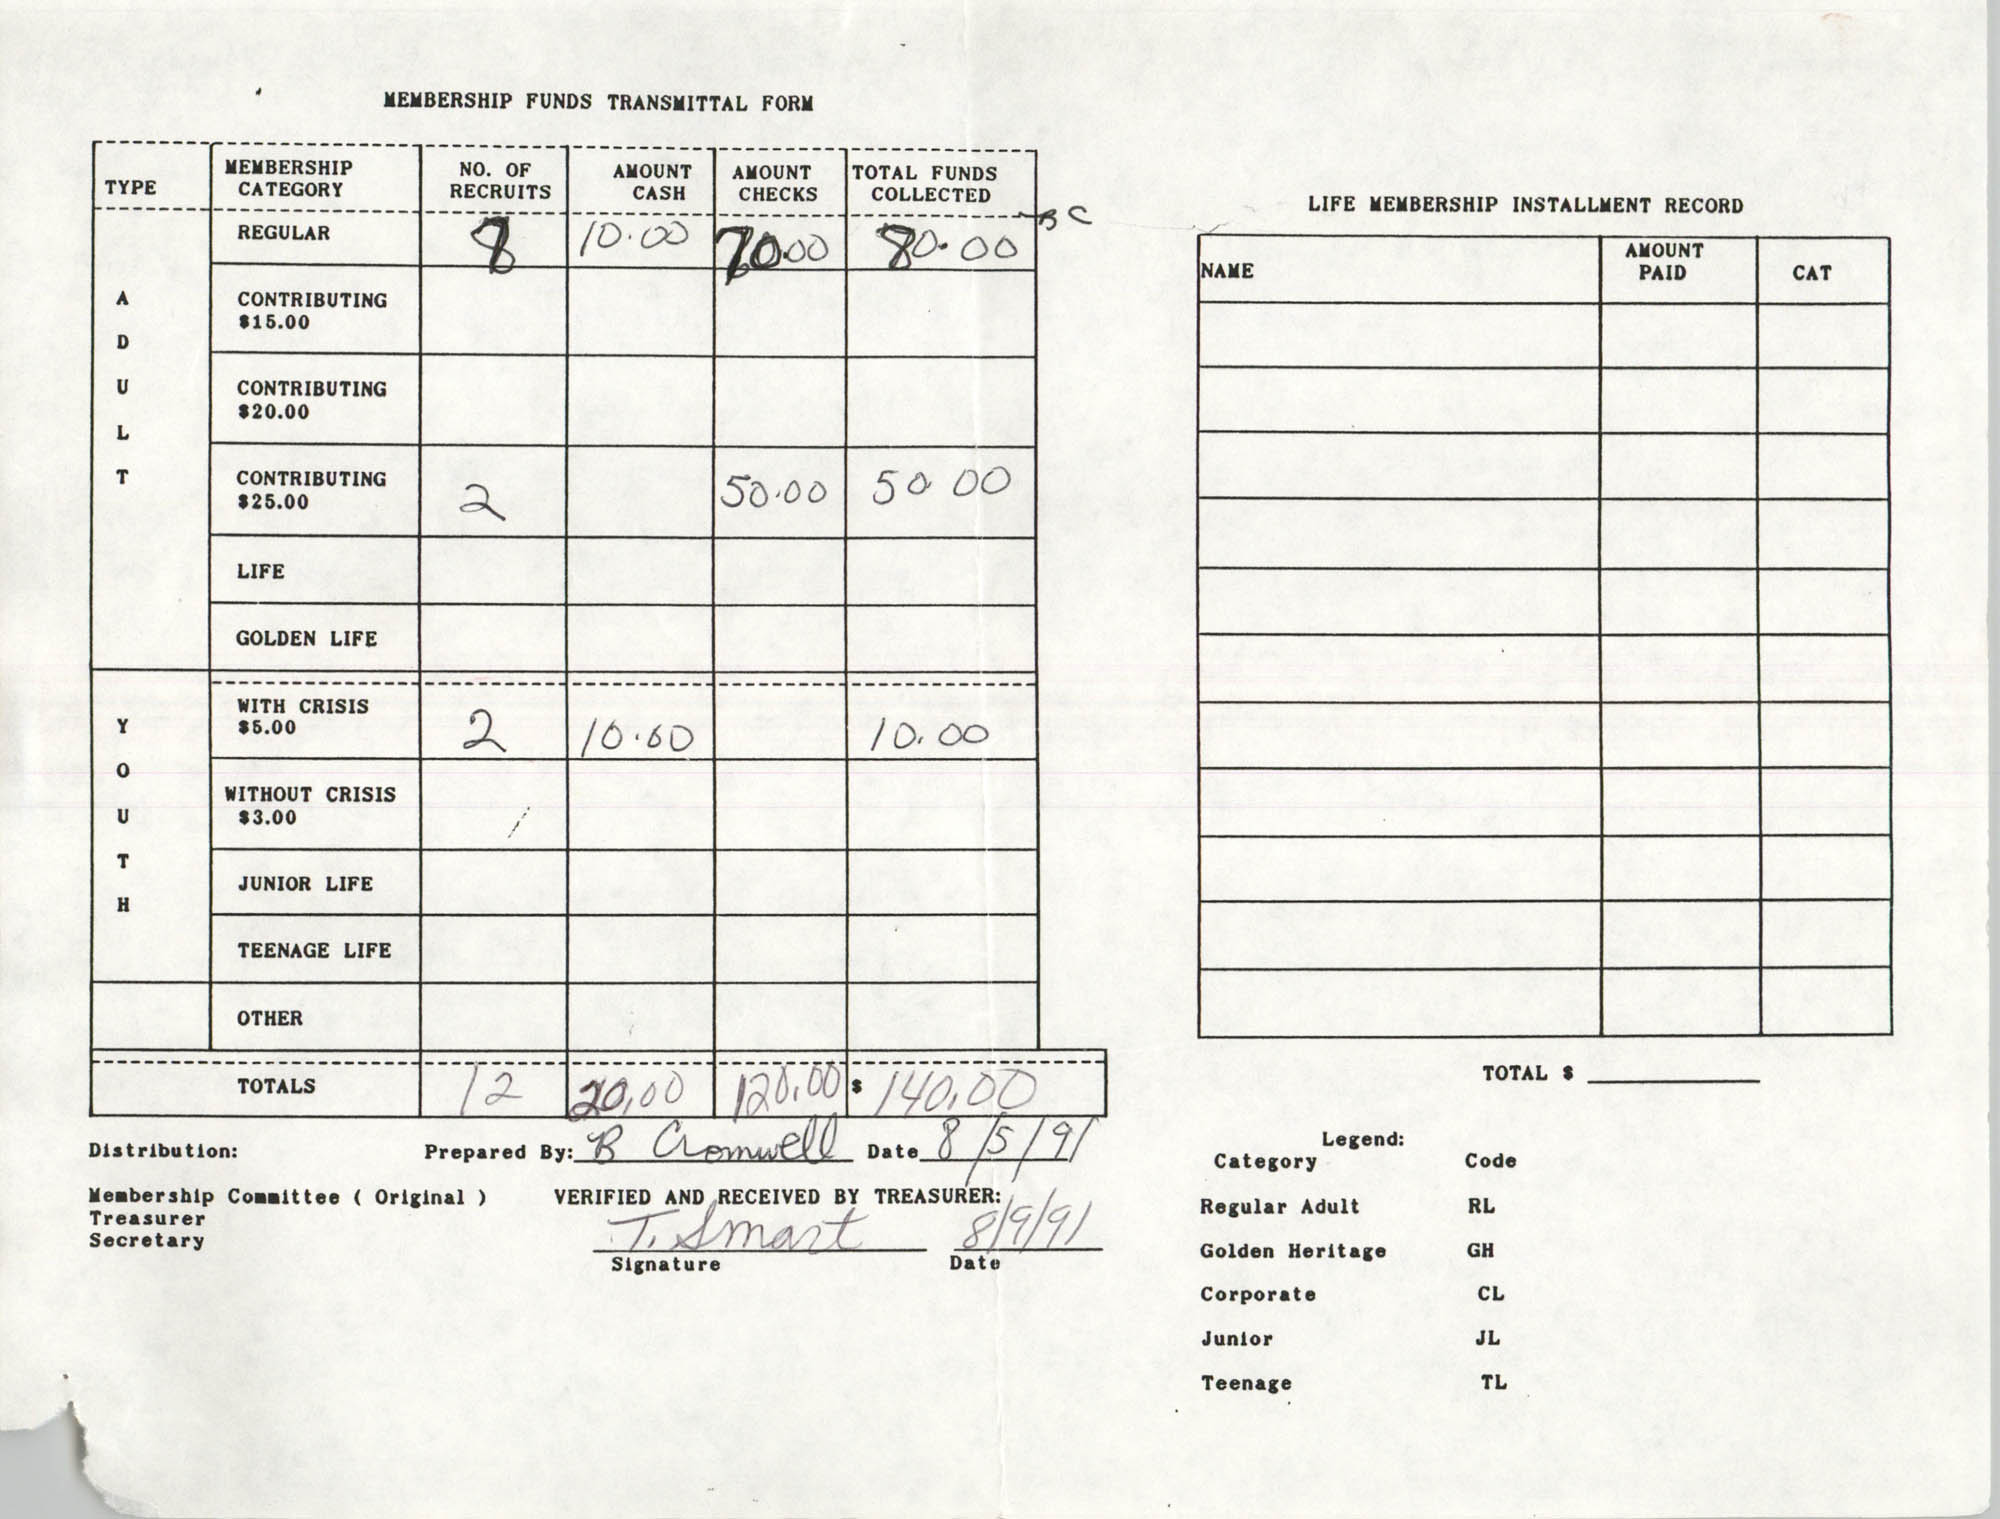 Charleston Branch of the NAACP Funds Transmittal Forms, August 1991, Page 7